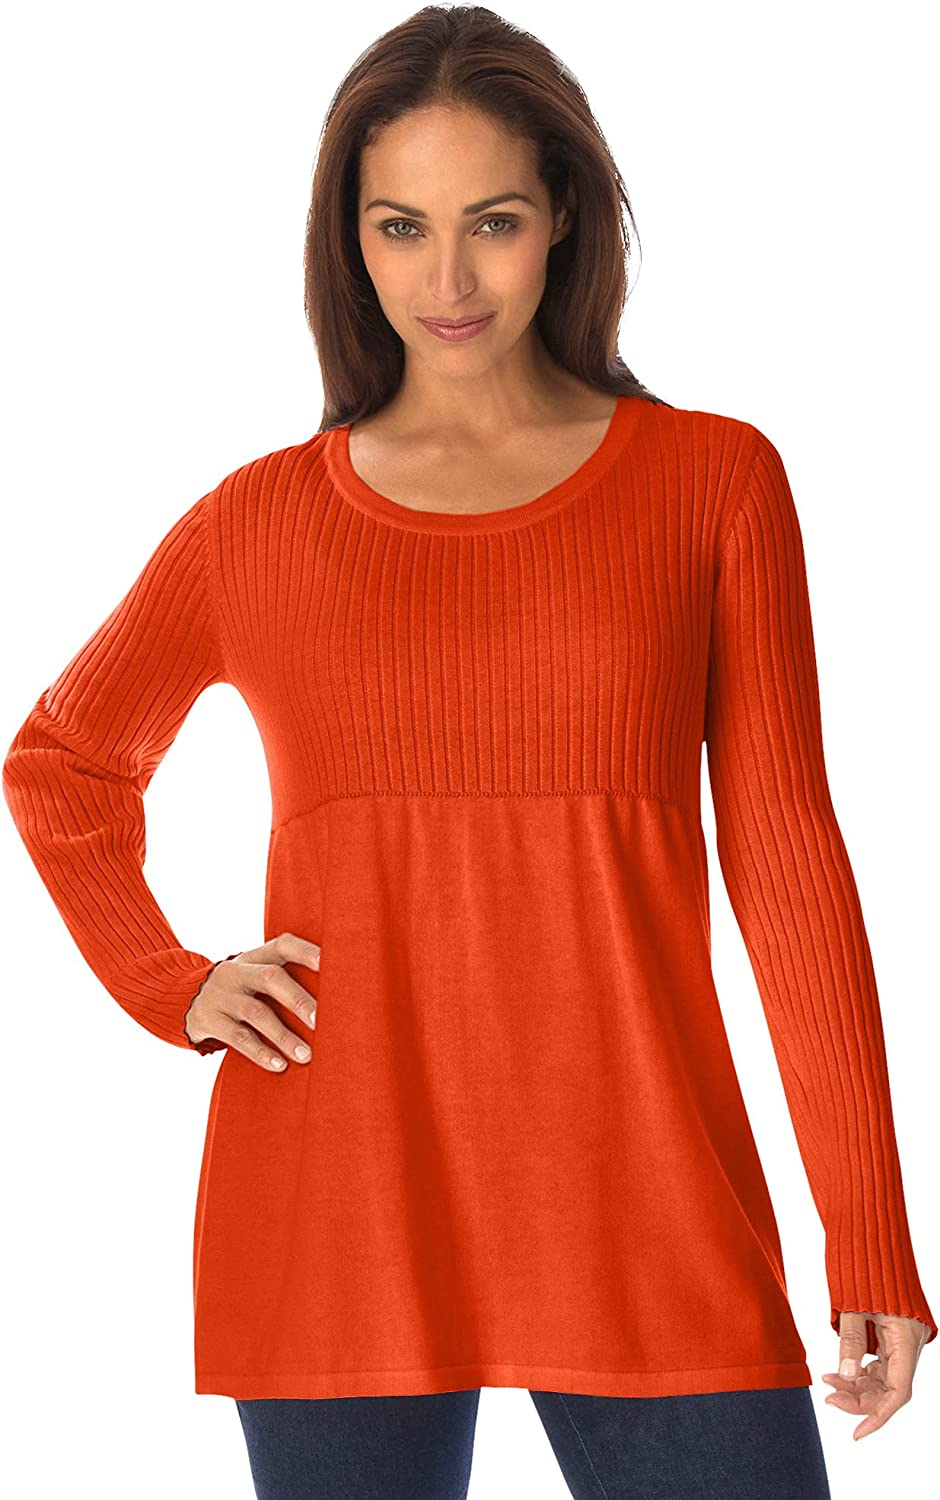 Jessica London Women's Plus Size Ribbed Baby Doll Tunic Sweater